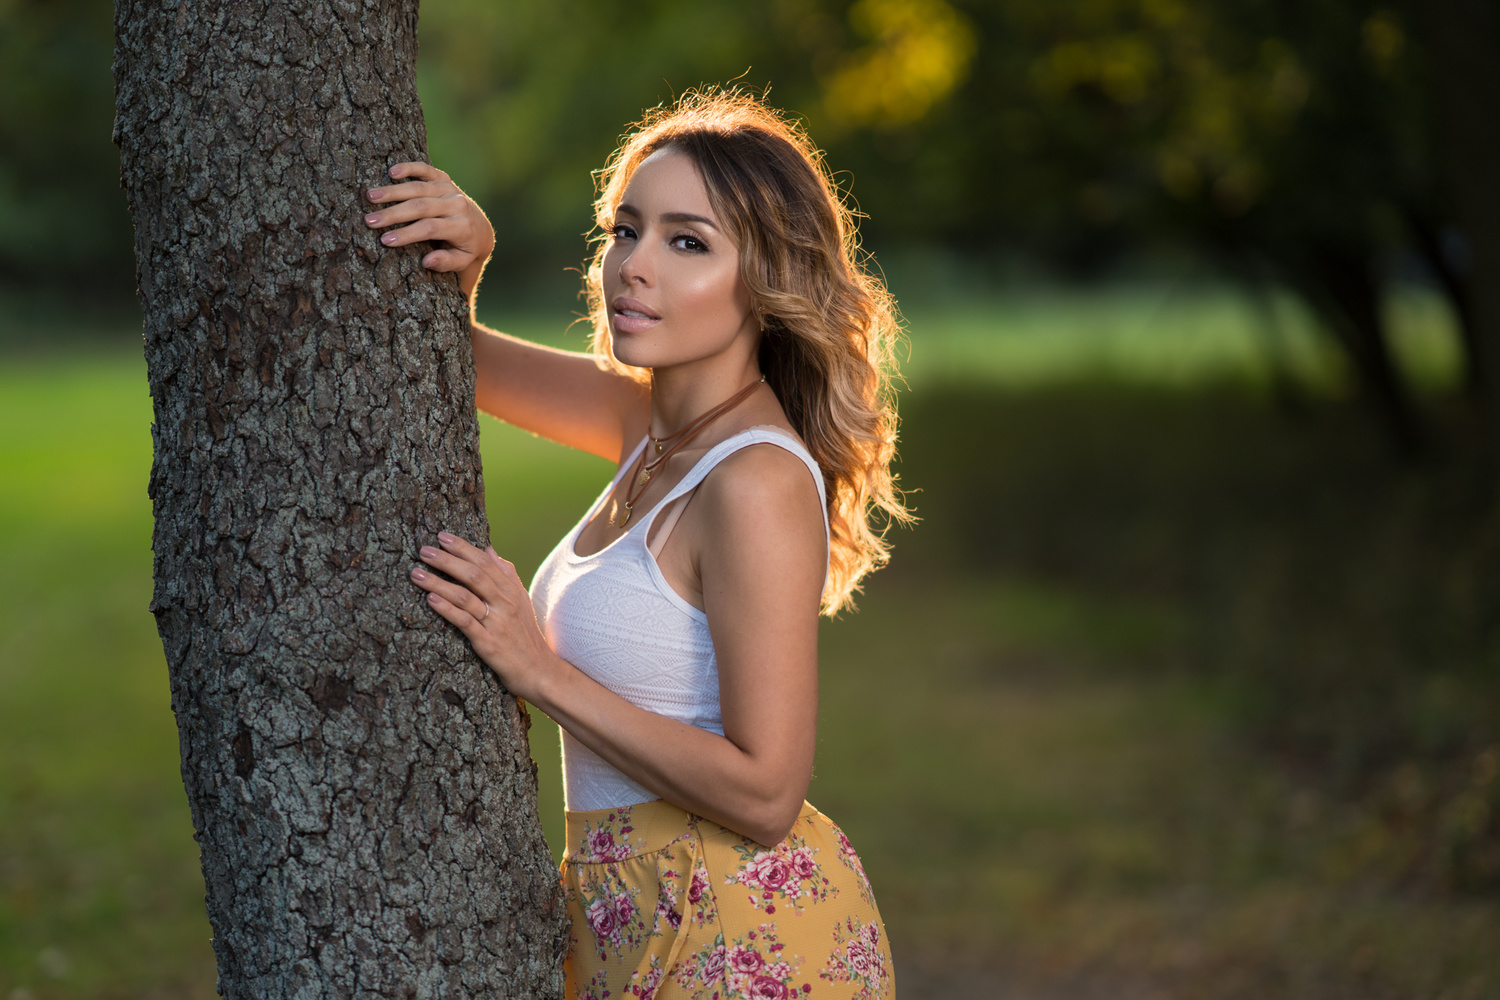 Natural Light Versus Off Camera Flash For Portraits Which Is Better Studio Lighting Diy Homemade Power Pack Flashes Part I Directly Following The Shooting Examples Ortiz Goes Into Pros And Cons Of Each Type Situations Would Like To Reiterate